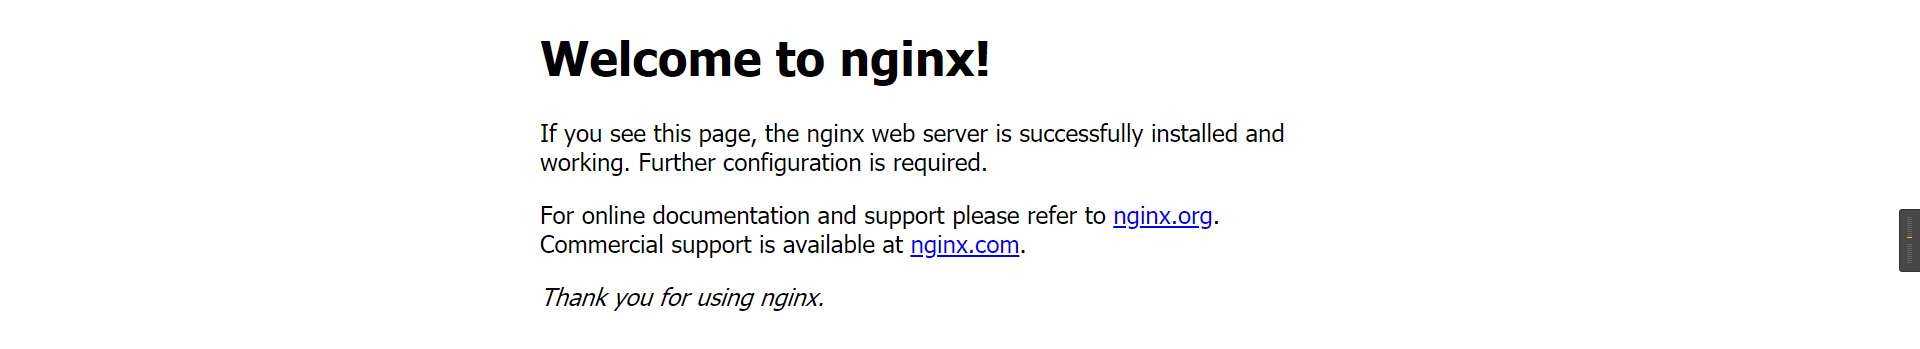 Welcome to nginx